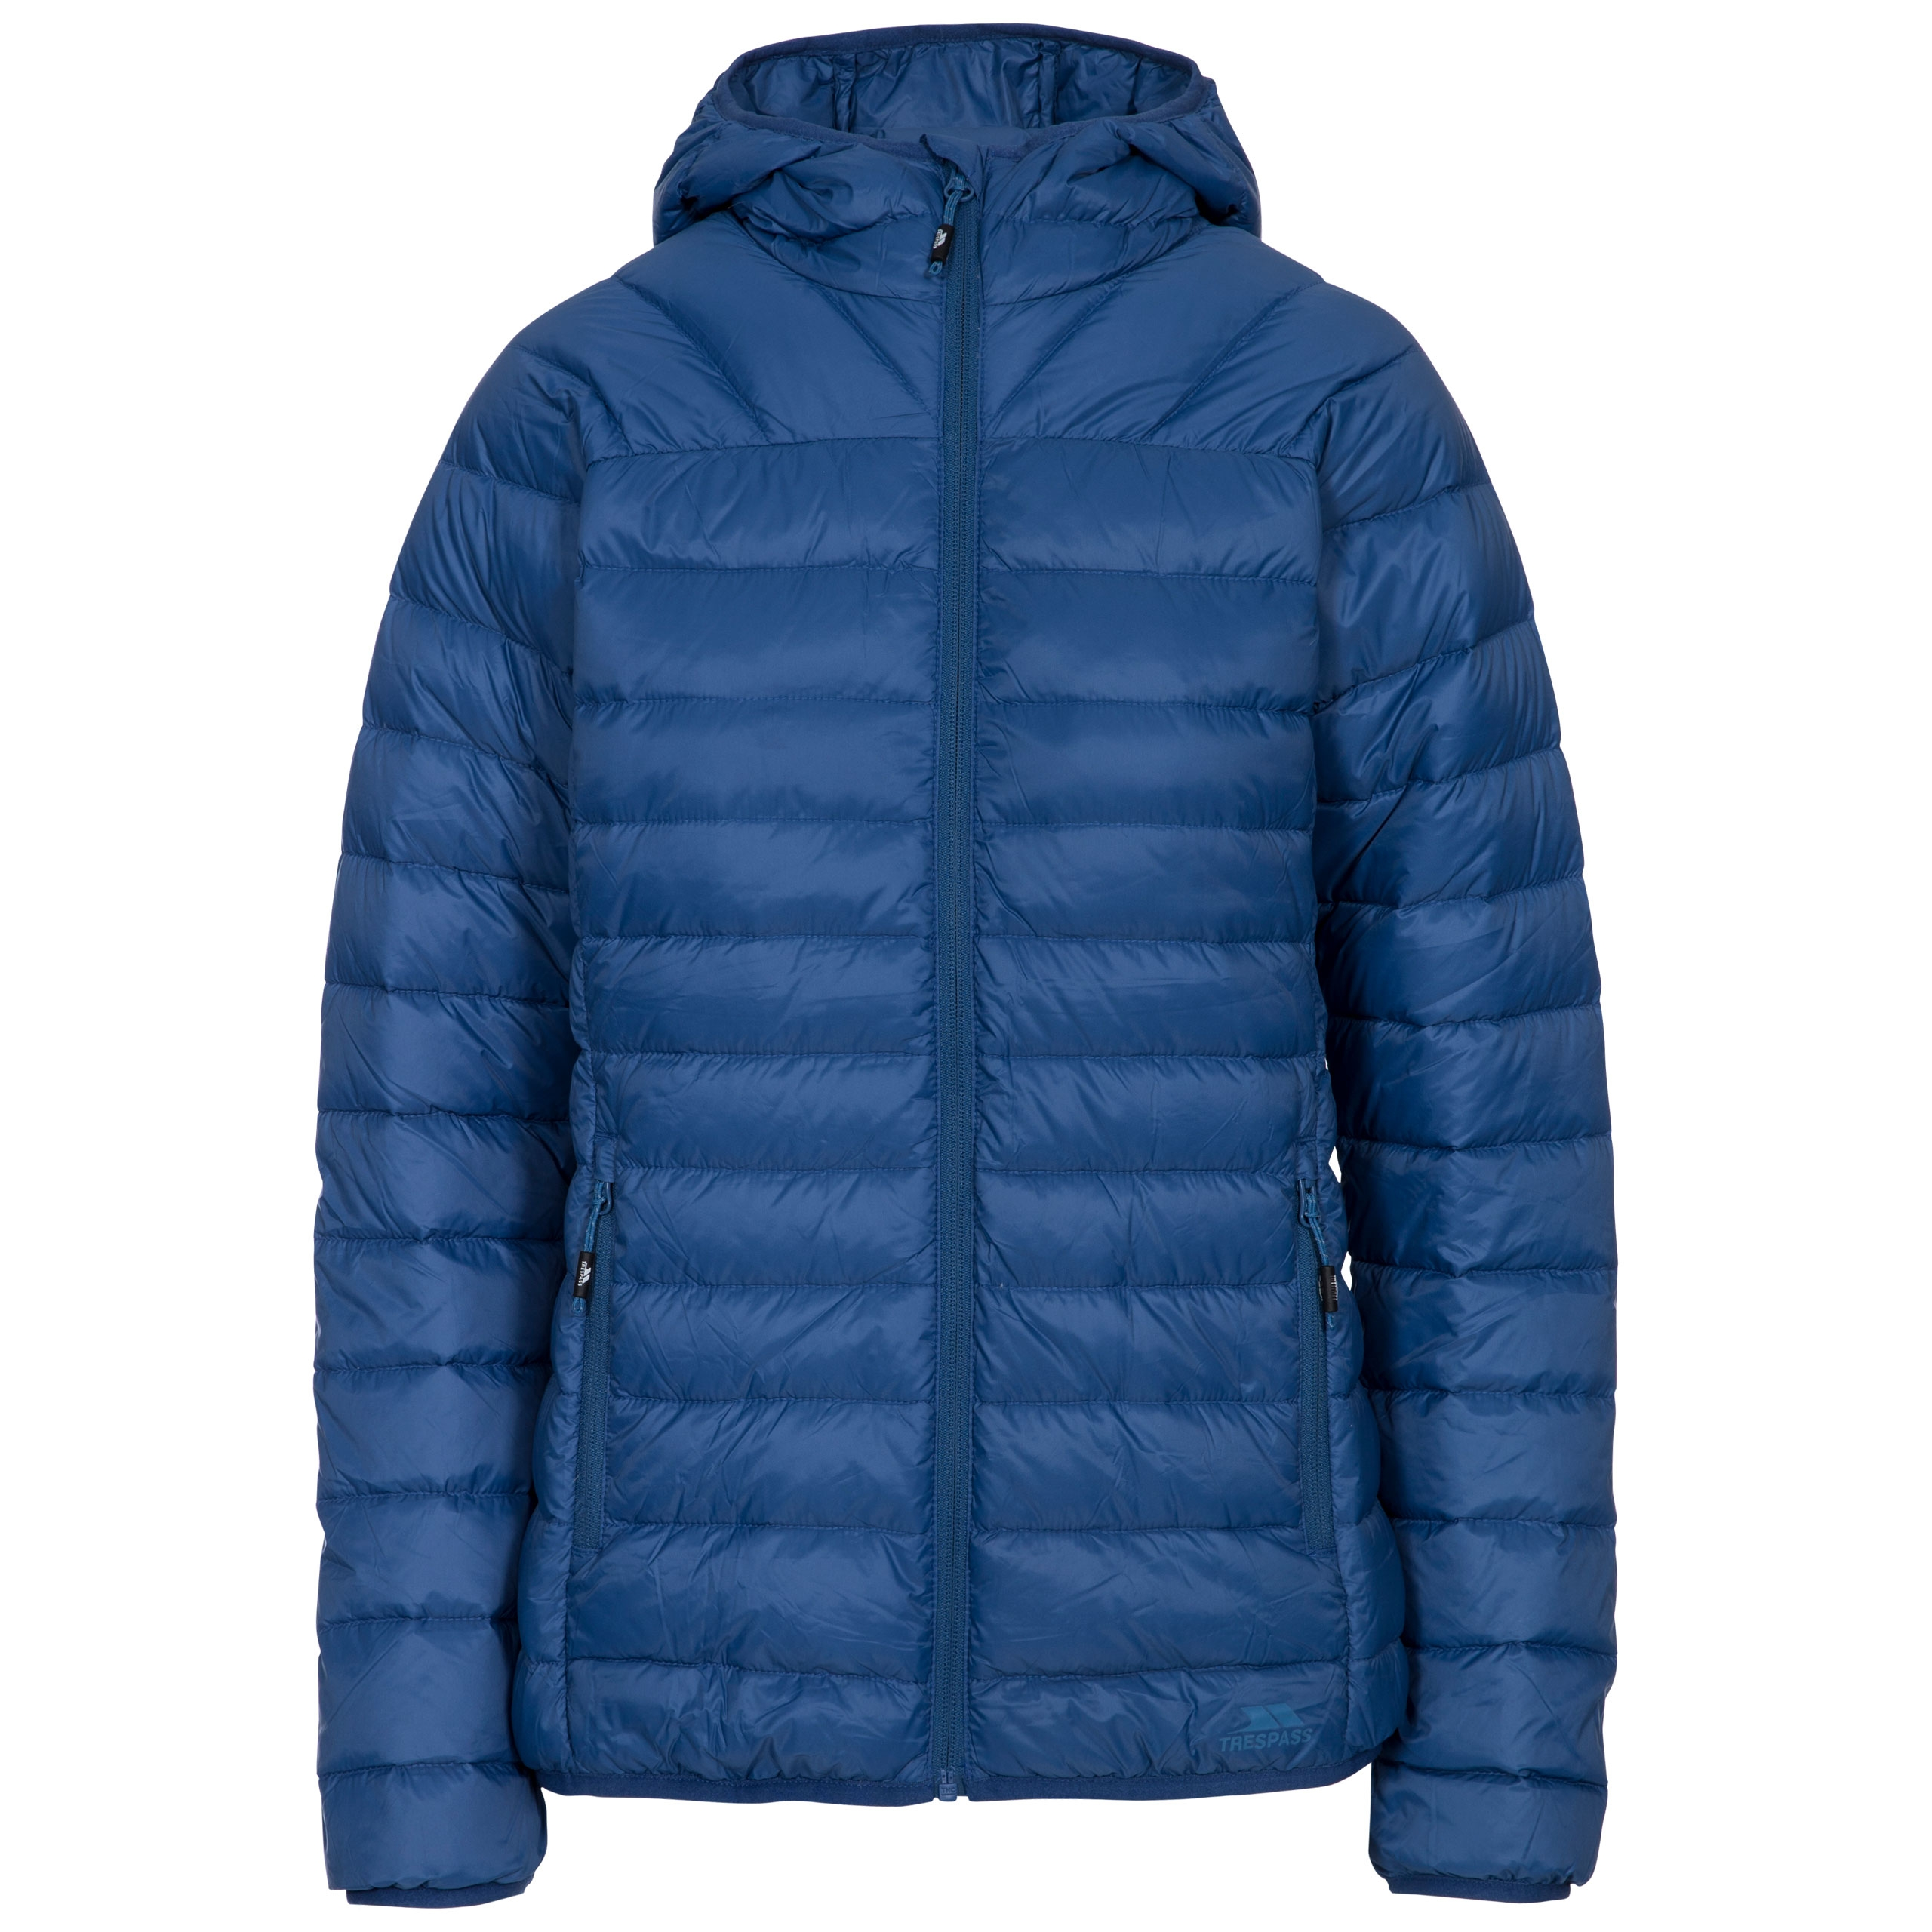 Trespass-Trisha-Womens-Lightweight-Down-Jacket-Puffer-Coat-with-Hood thumbnail 24